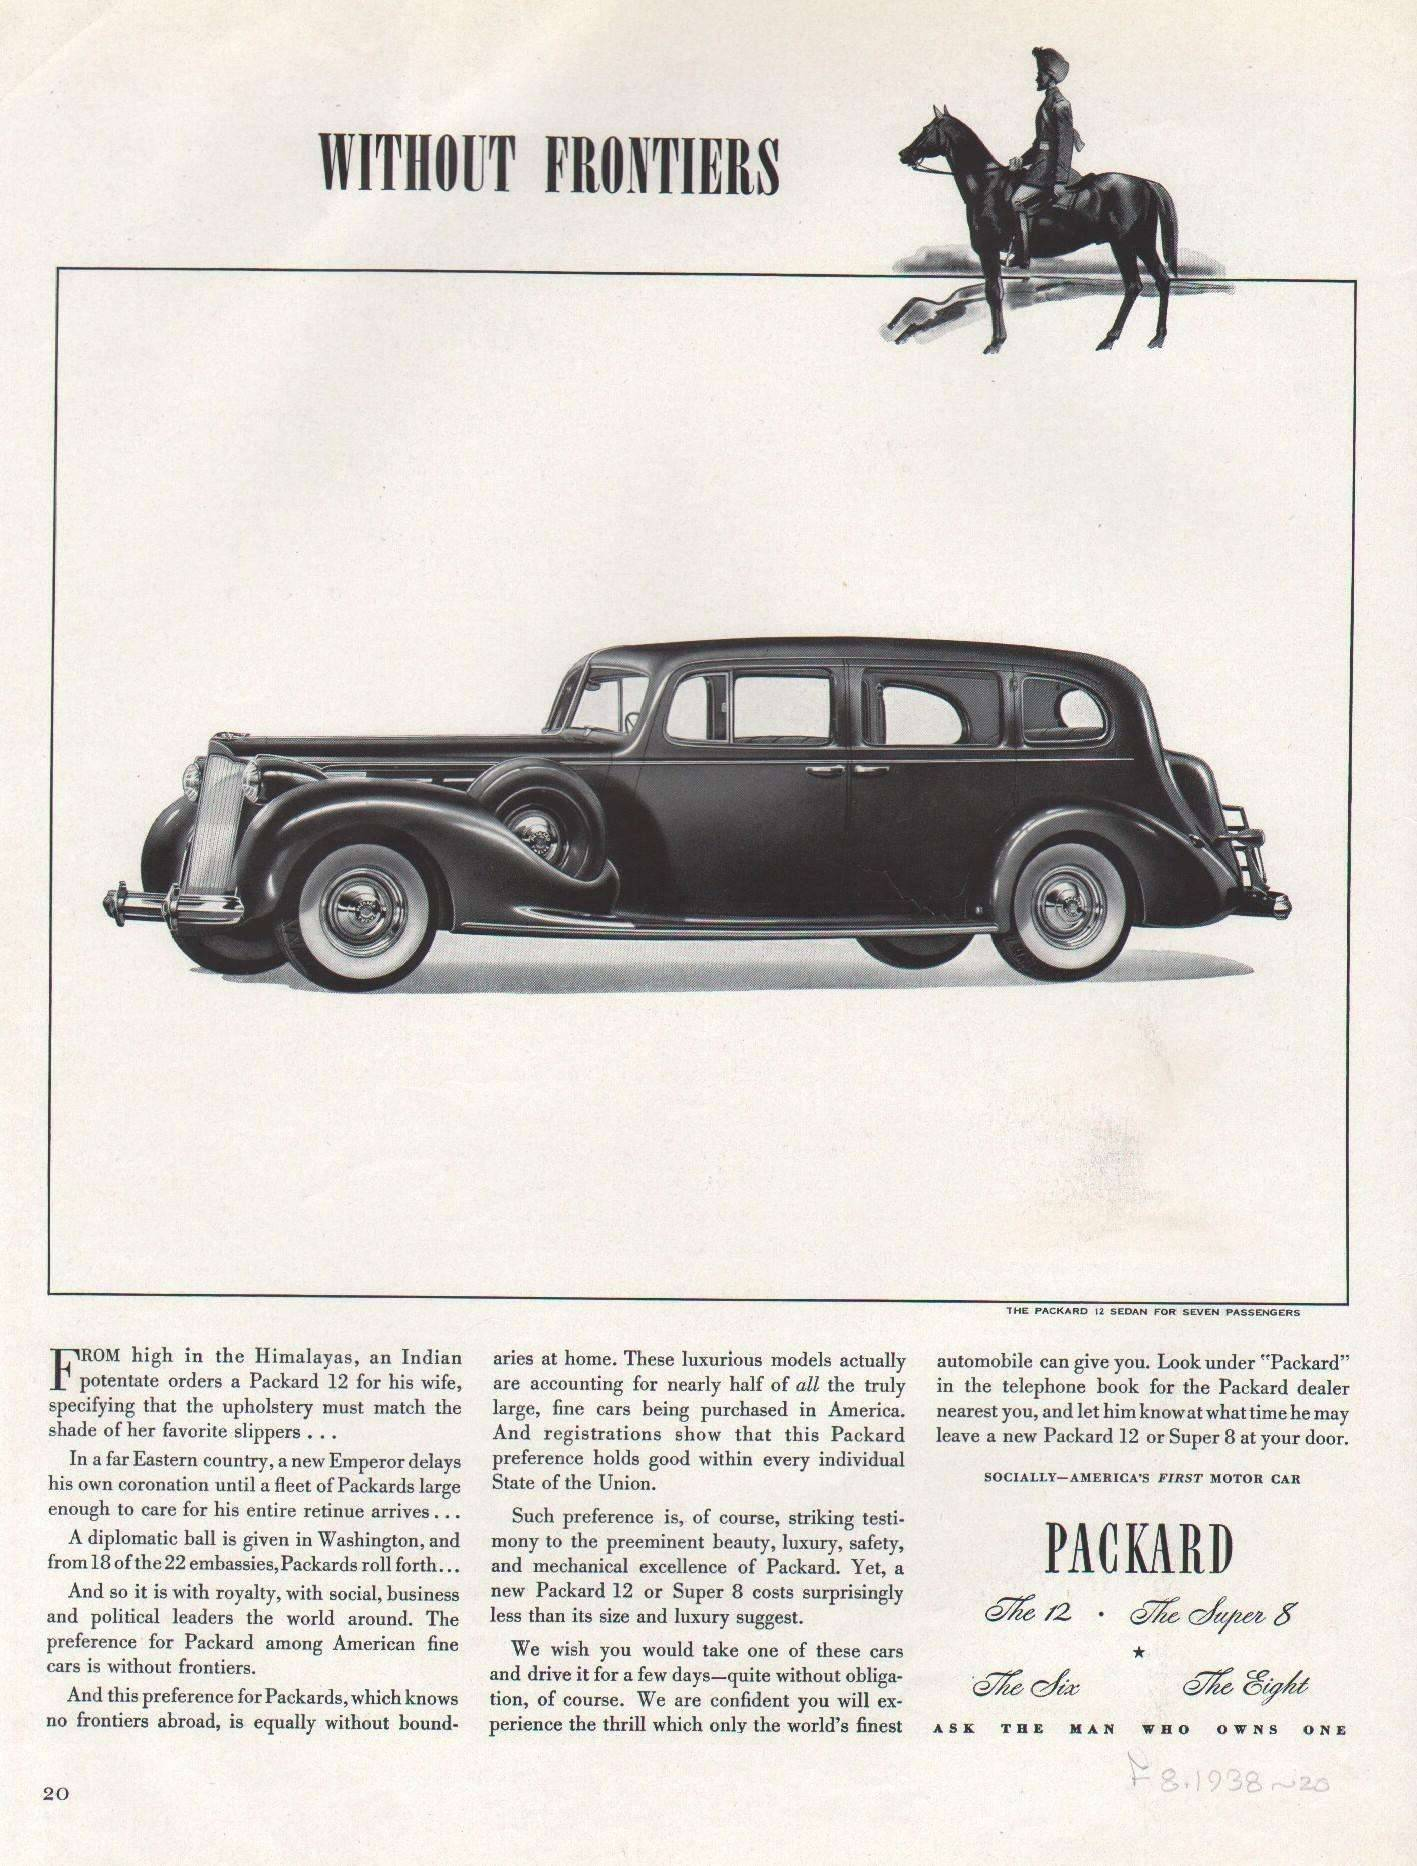 1938 Twelve Sedan for Seven Passengers - Advertisement Fortune magazine 8 -1938 Page 20